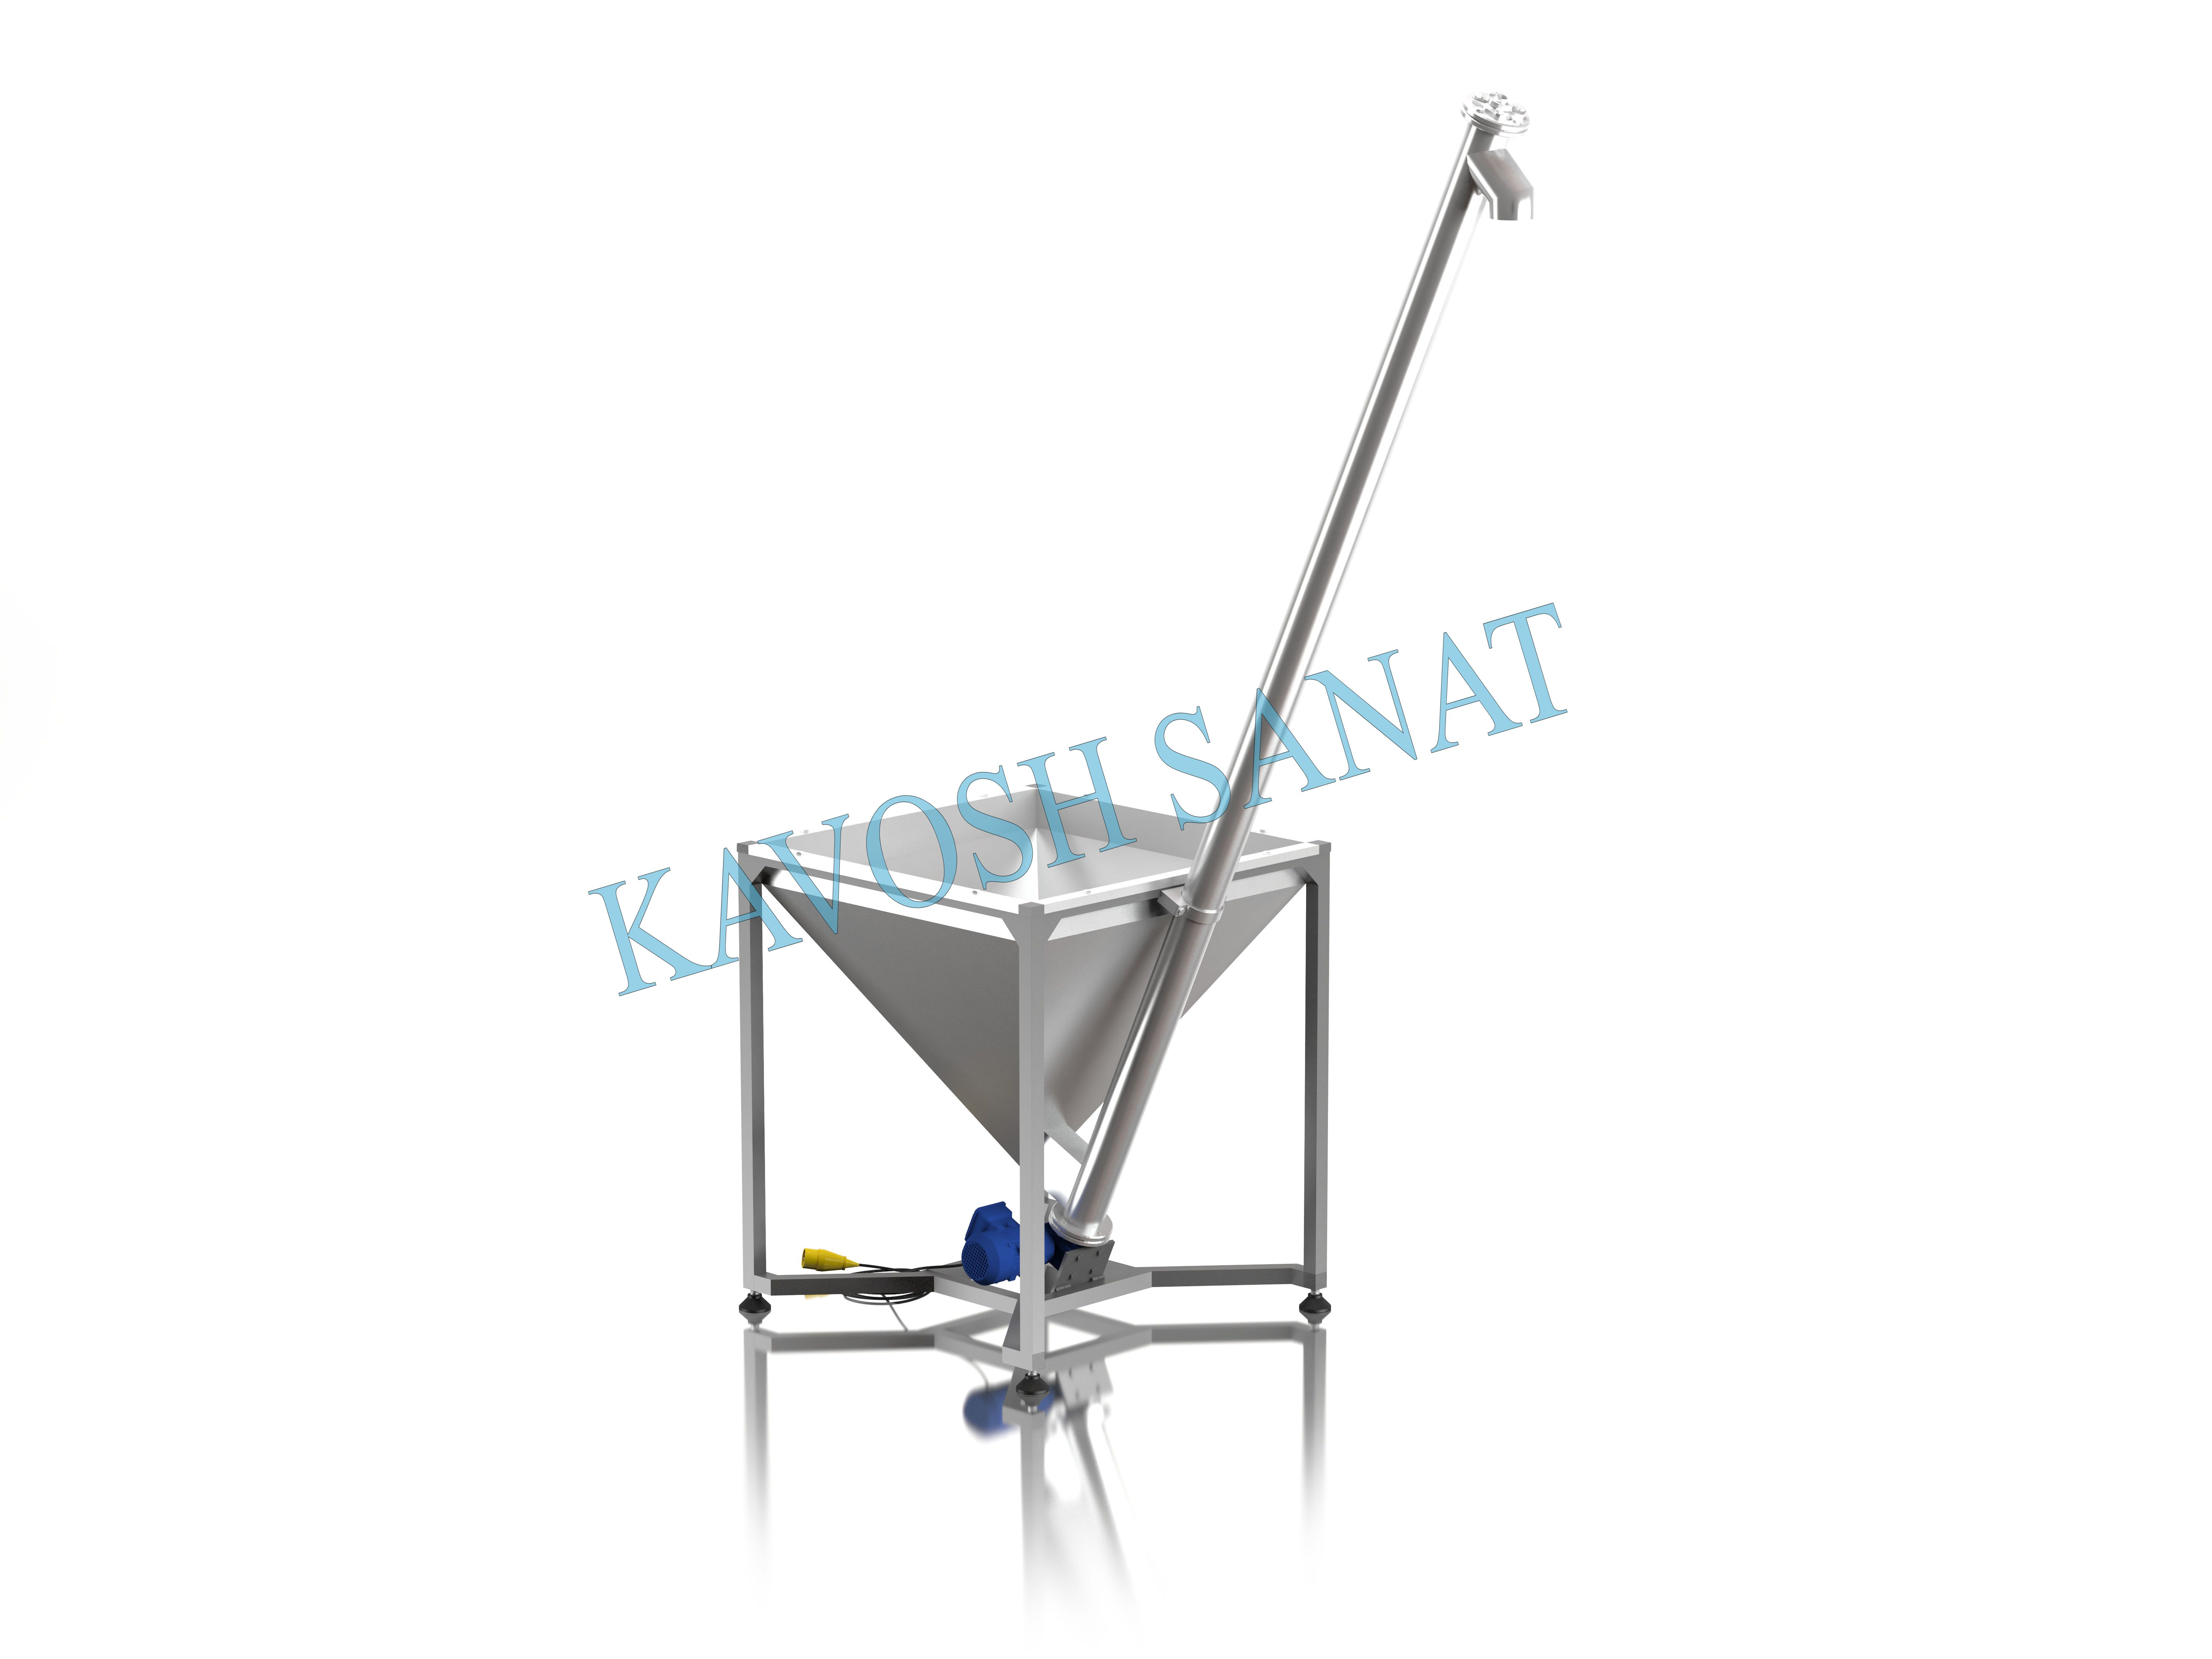 Kavosh Sanat - Powder Conveyor Machine